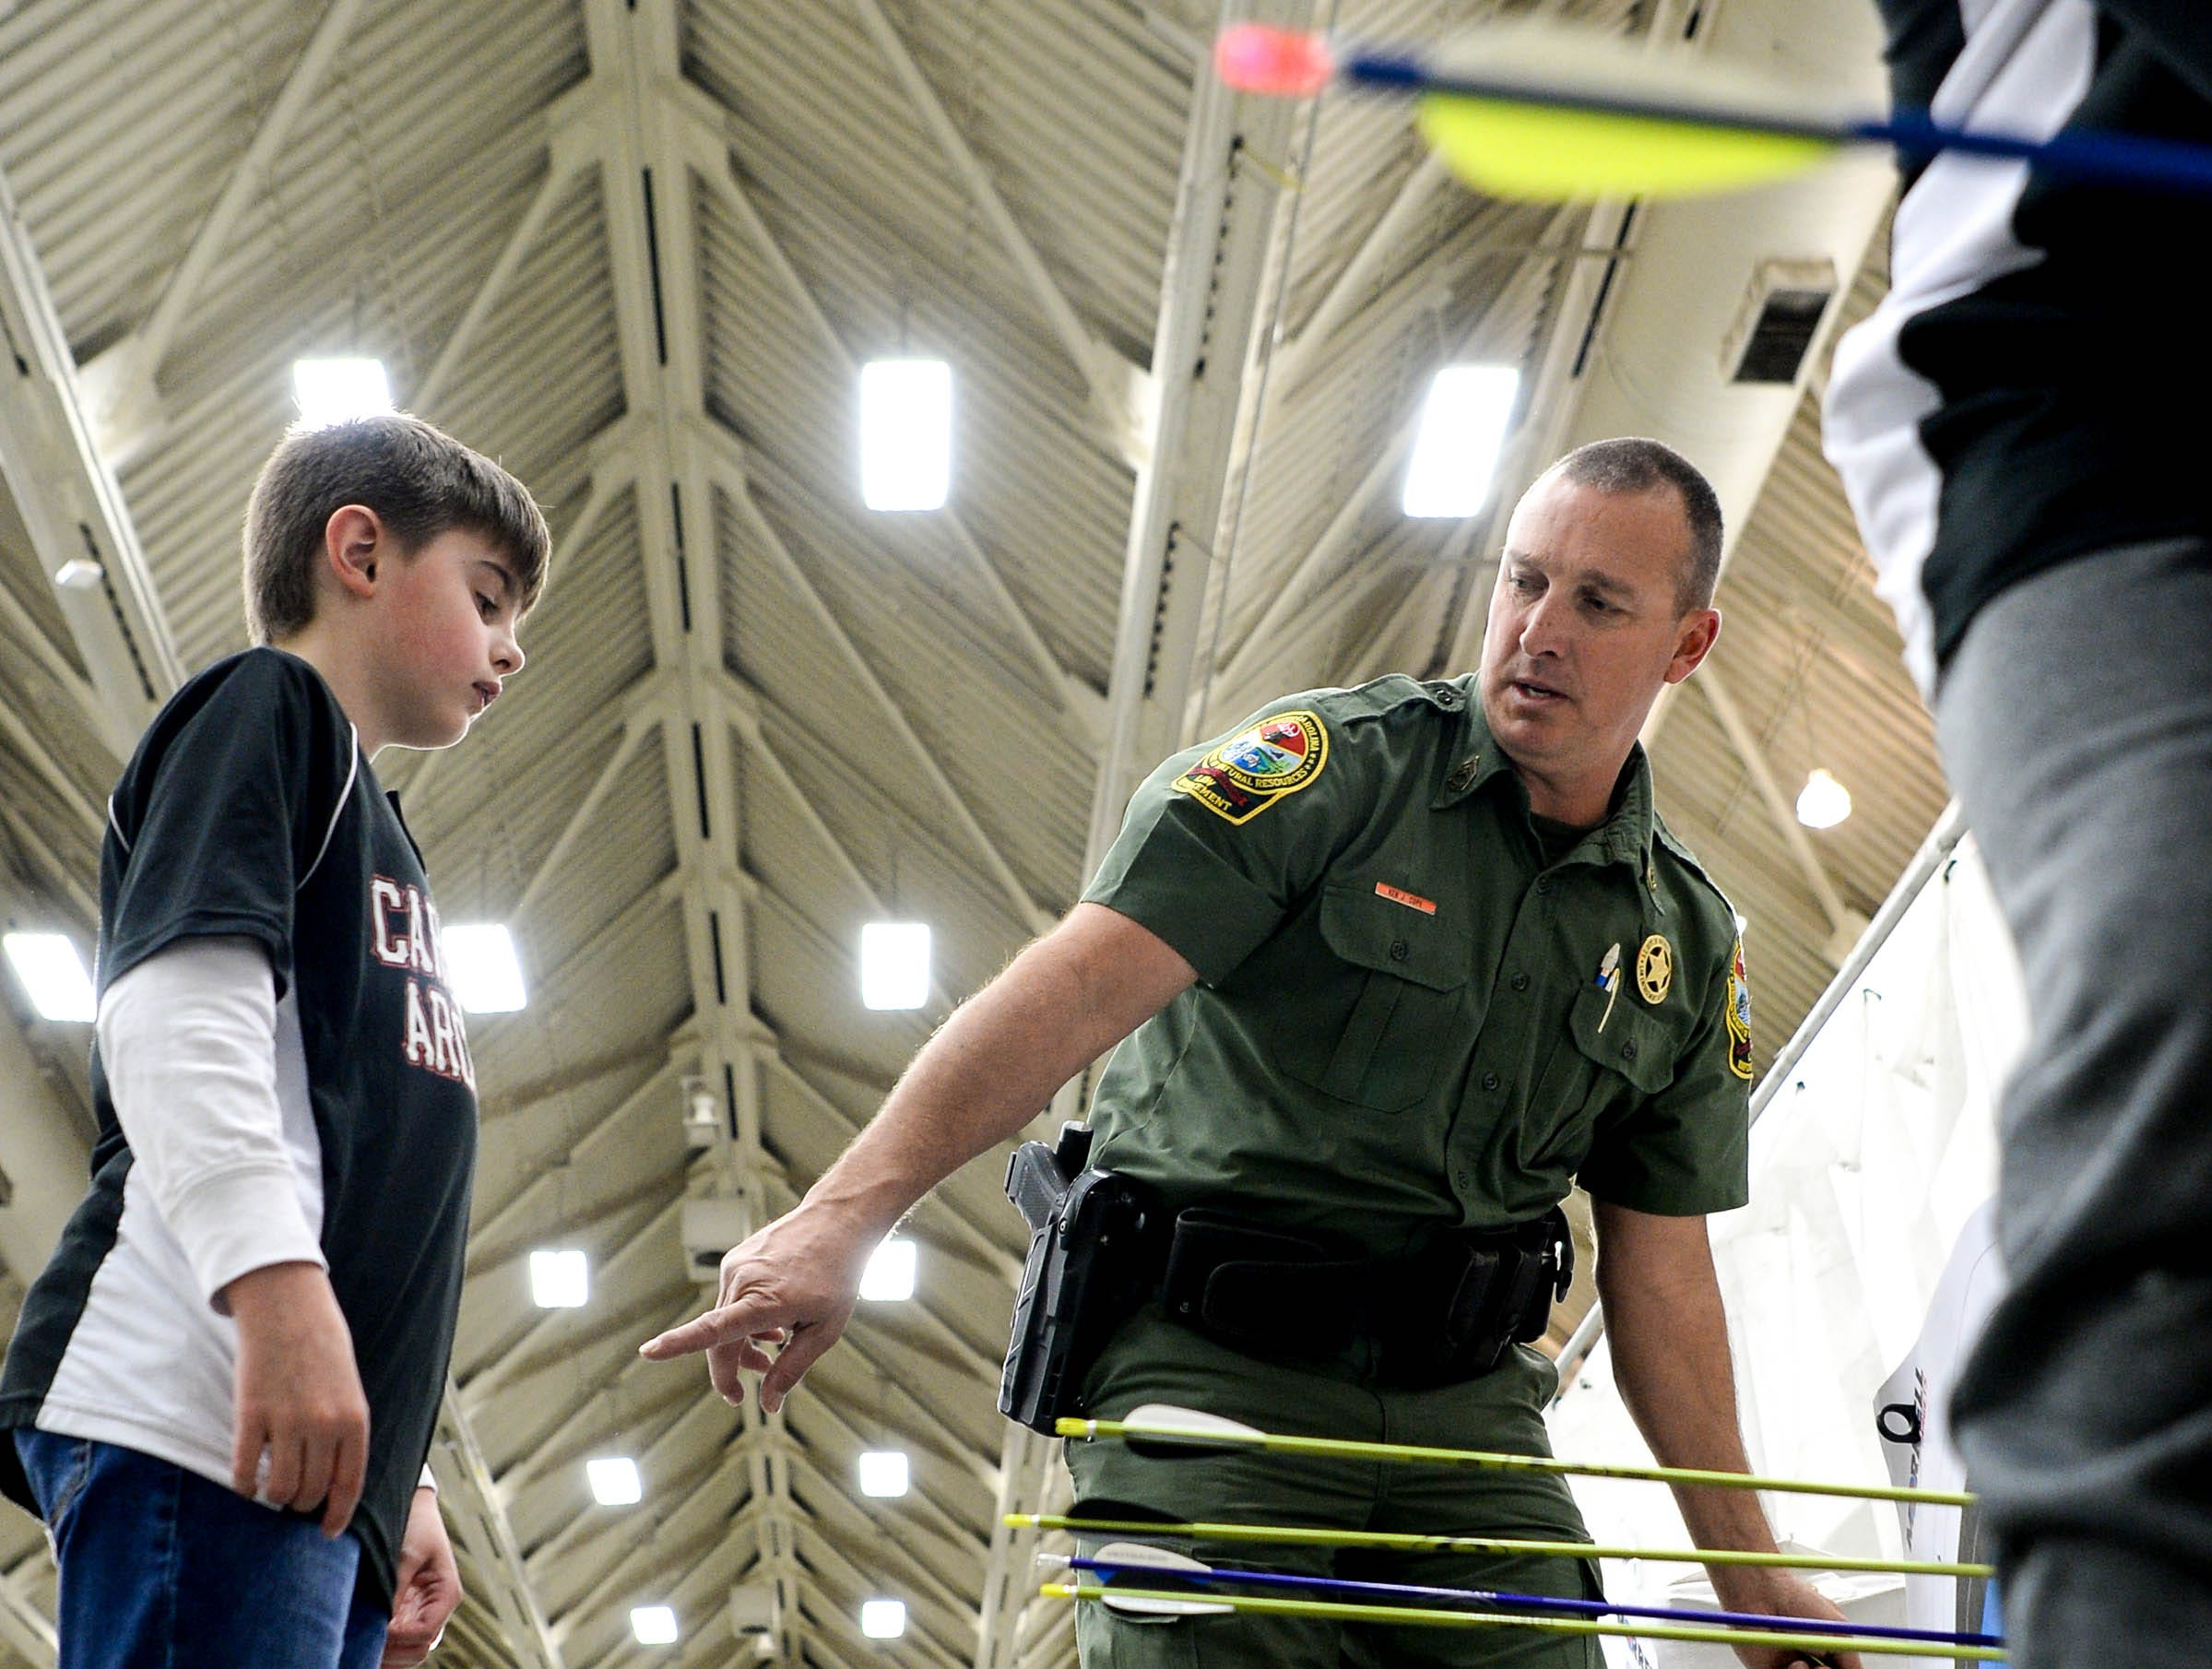 Sfc. Ken Cope helps Cooper Wilburn of Bethel Elementary School in Simpsonville pull out his arrows during the South Carolina Department of Natural Resources regional National Archery in the Schools Program (NASP) regional competition at the Anderson Civic Center Wednesday.  The program, which awards $50,000 in scholarships to high school seniors, is a joint venture between state departments of Education and Wildlife. The competition in Anderson, leading up to the state finals March 26-28 in Sumter, had 950 children from 14 elementary and 23 high schools around the state.